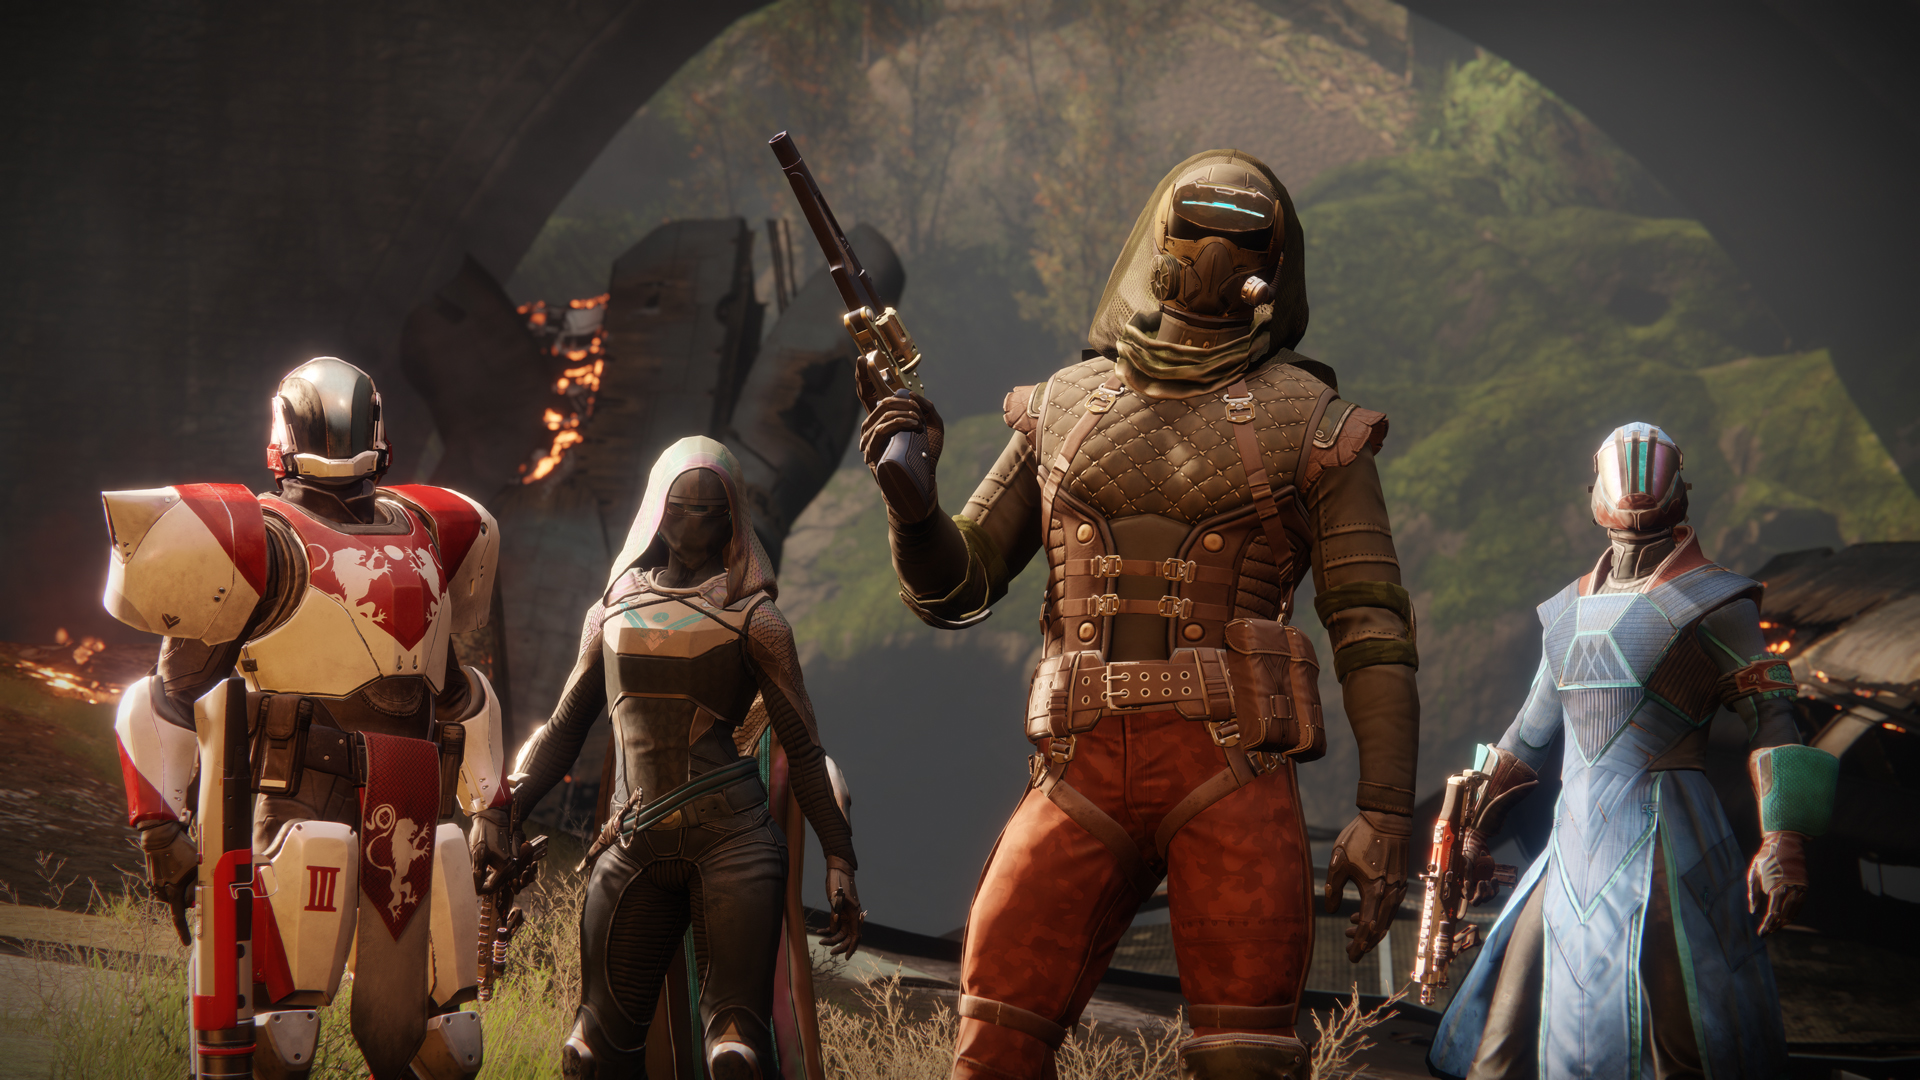 Destiny 2 - four Guardians standing in pre-match pose on The Fortress, a Crucible scheme